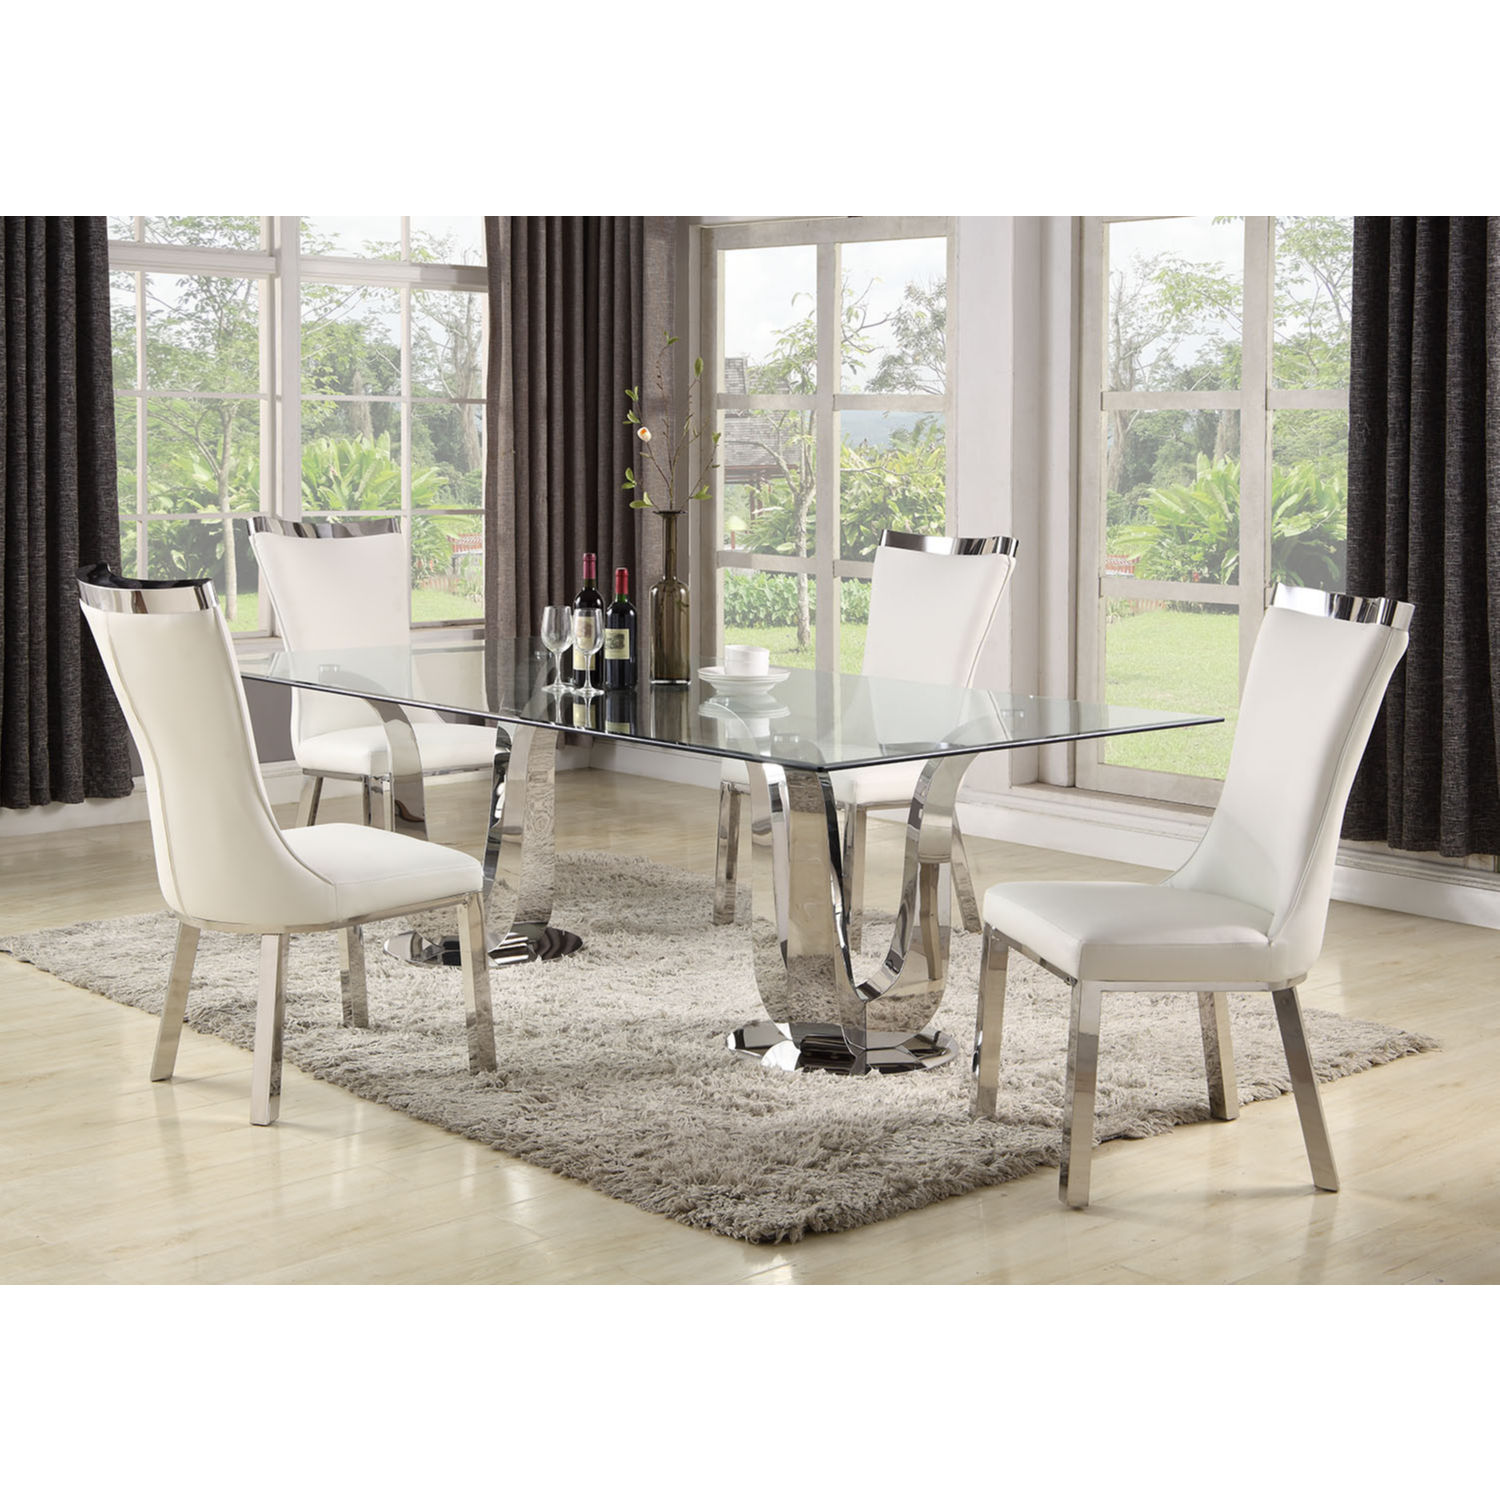 Remarkable Adelle 5 Piece Dining Set In Stainless Glass White Leatherette By Chintaly Imports Home Interior And Landscaping Synyenasavecom